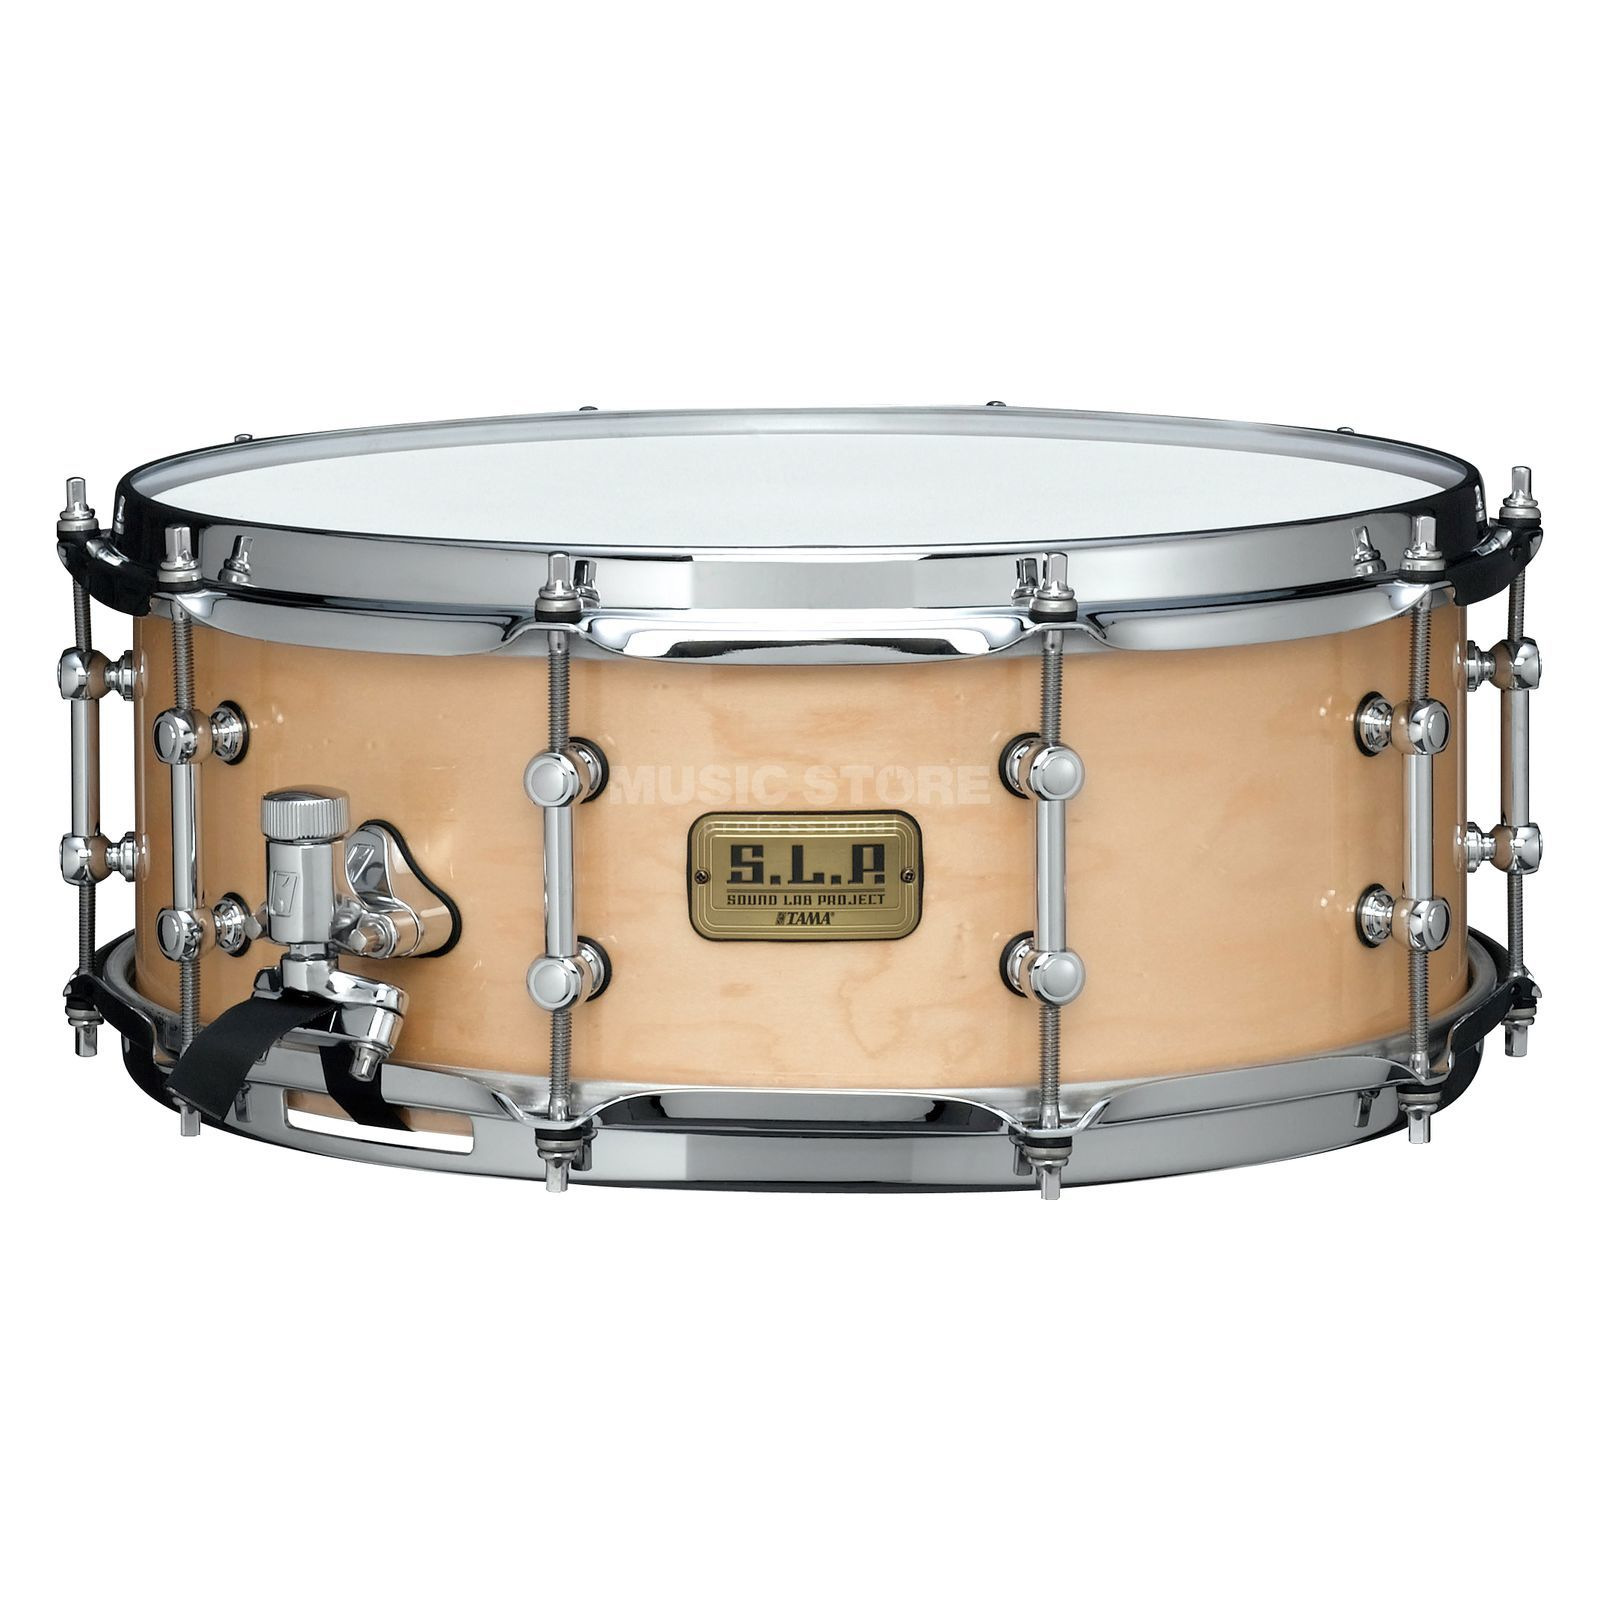 "Tama S.L.P. Maple Snare LMP1455SMP, Super Maple 14""x5.5"" Produktbillede"